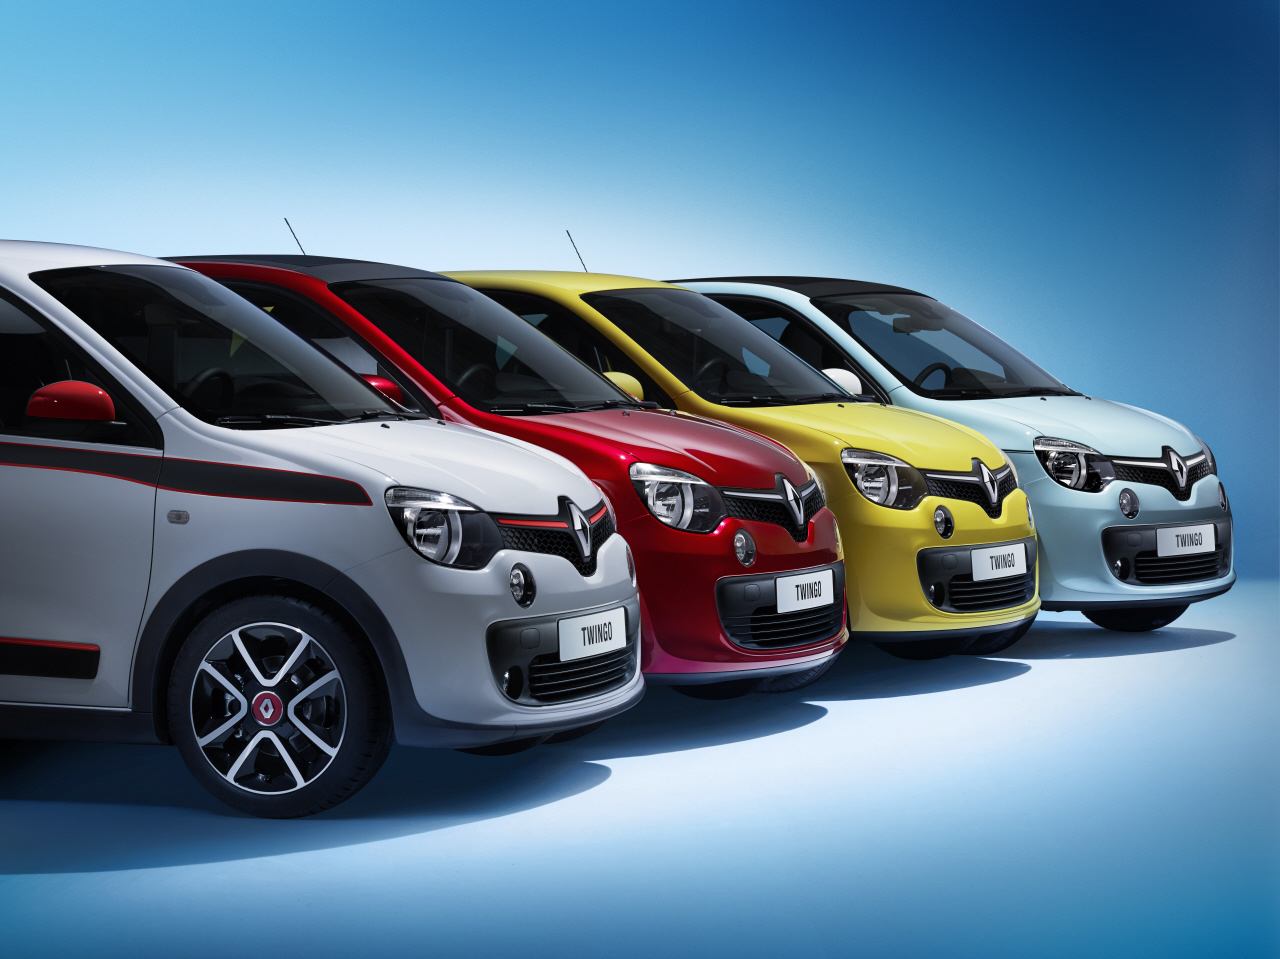 nouvelle renault twingo iii 2014 premi res indiscr tions l 39 argus. Black Bedroom Furniture Sets. Home Design Ideas